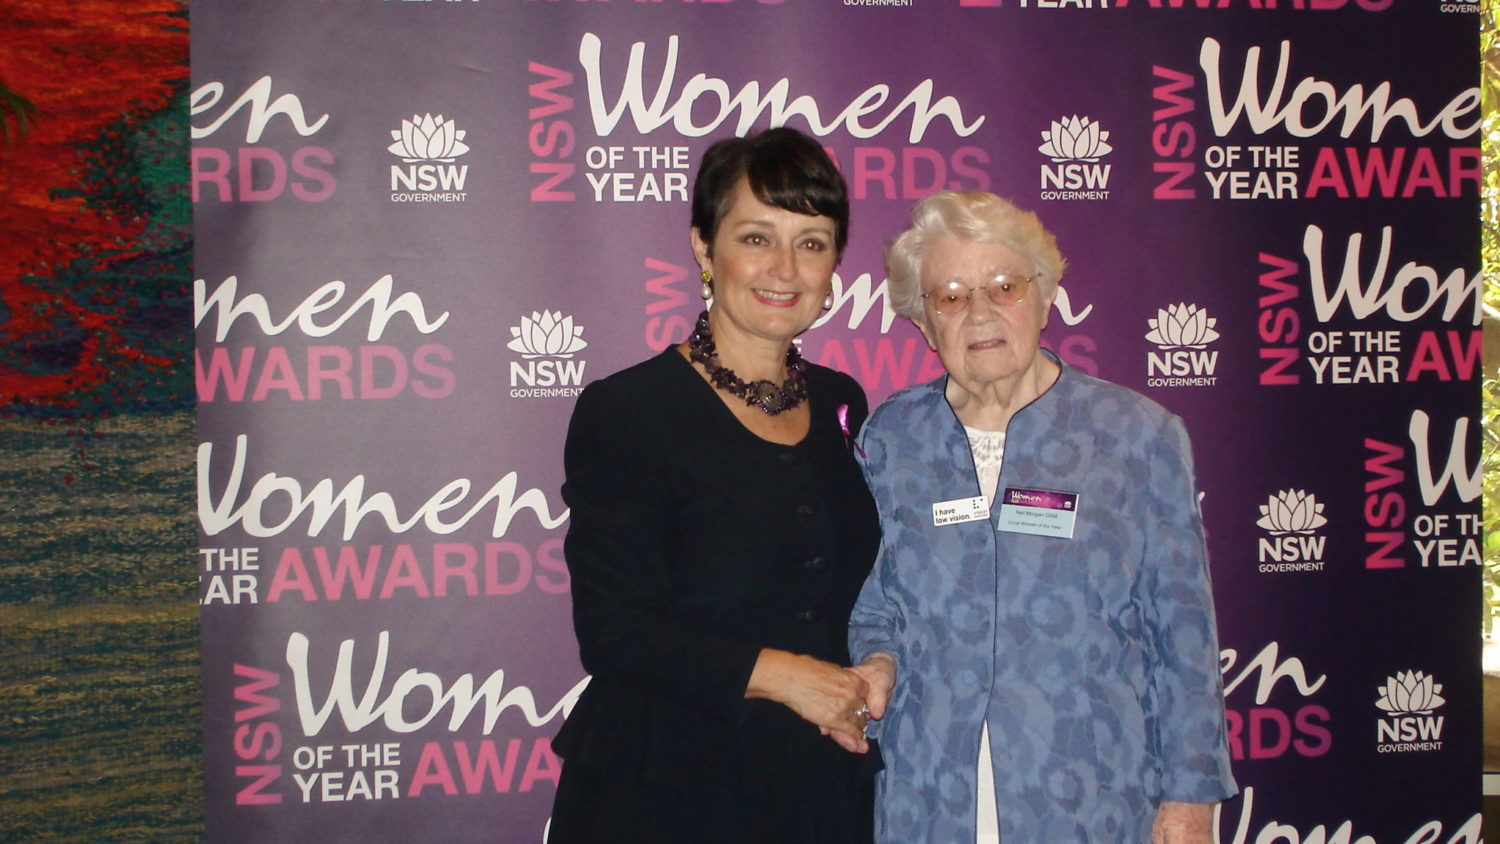 2013 Women of the Year Awards